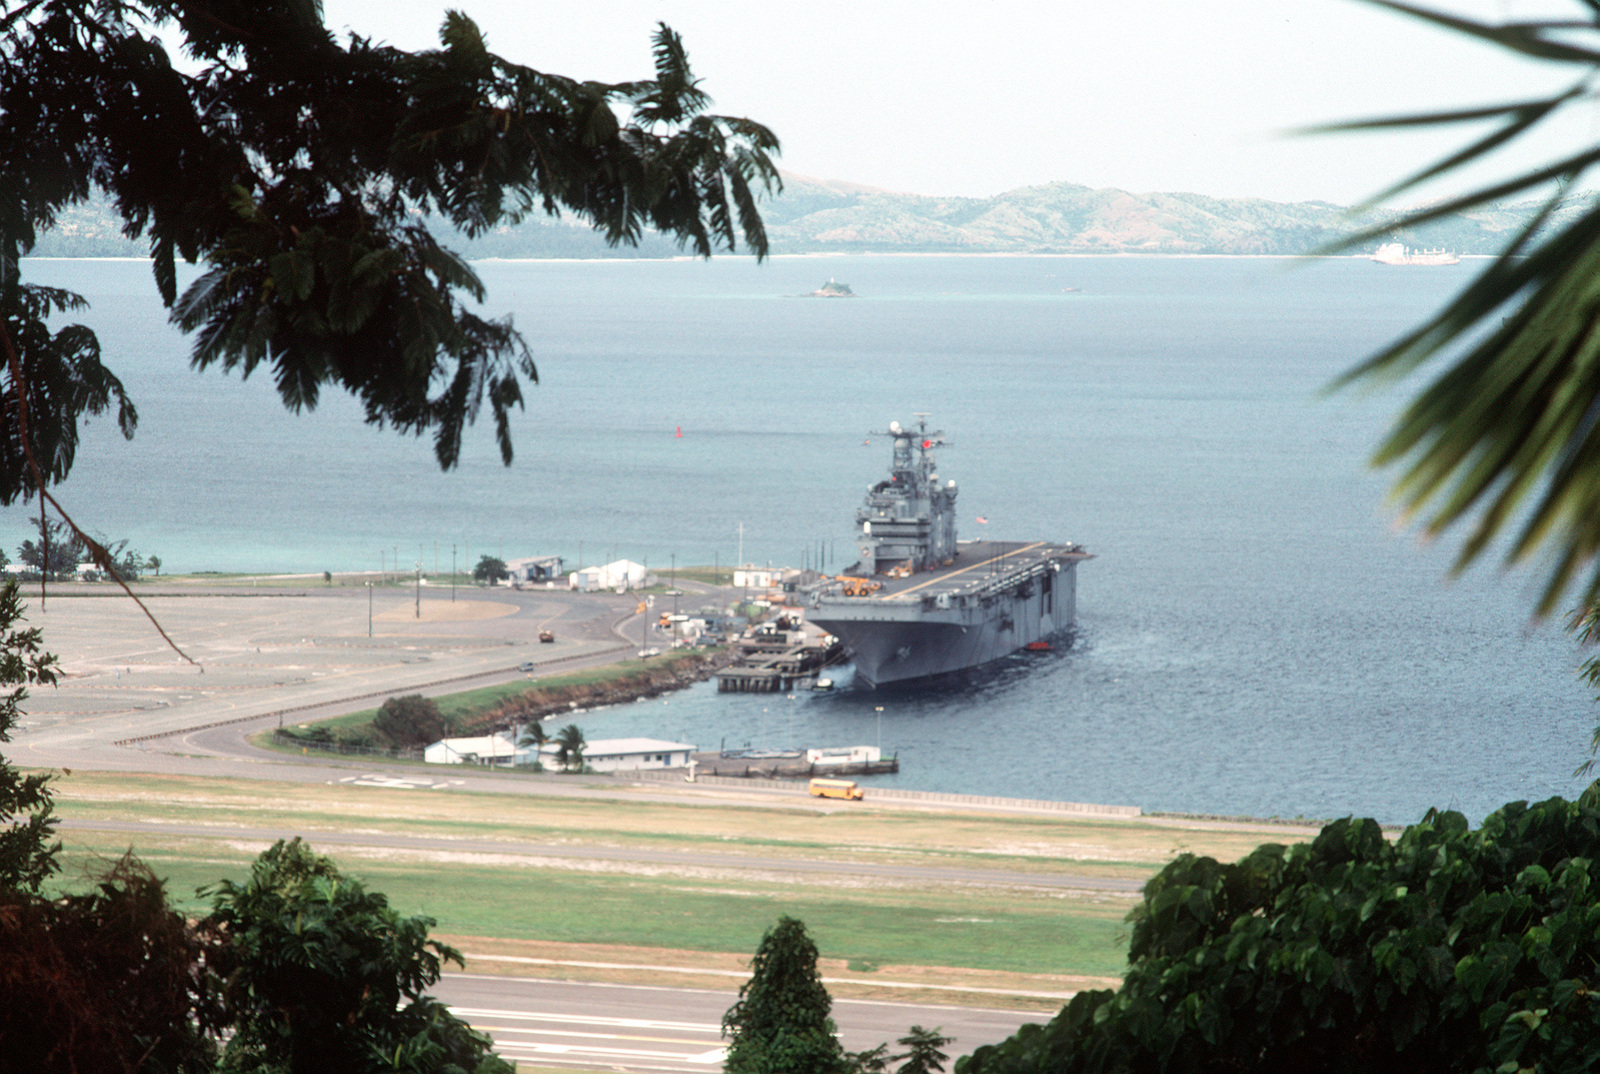 The amphibious assault ship USS BELLEAU WOOD (LHA-3) is docked at Leyte Pier prior to departing from the station. U.S. naval forces are departing from Naval Station, Subic Bay and Naval Air Station, Cubi Point, control of which will be assumed by the Philippine government